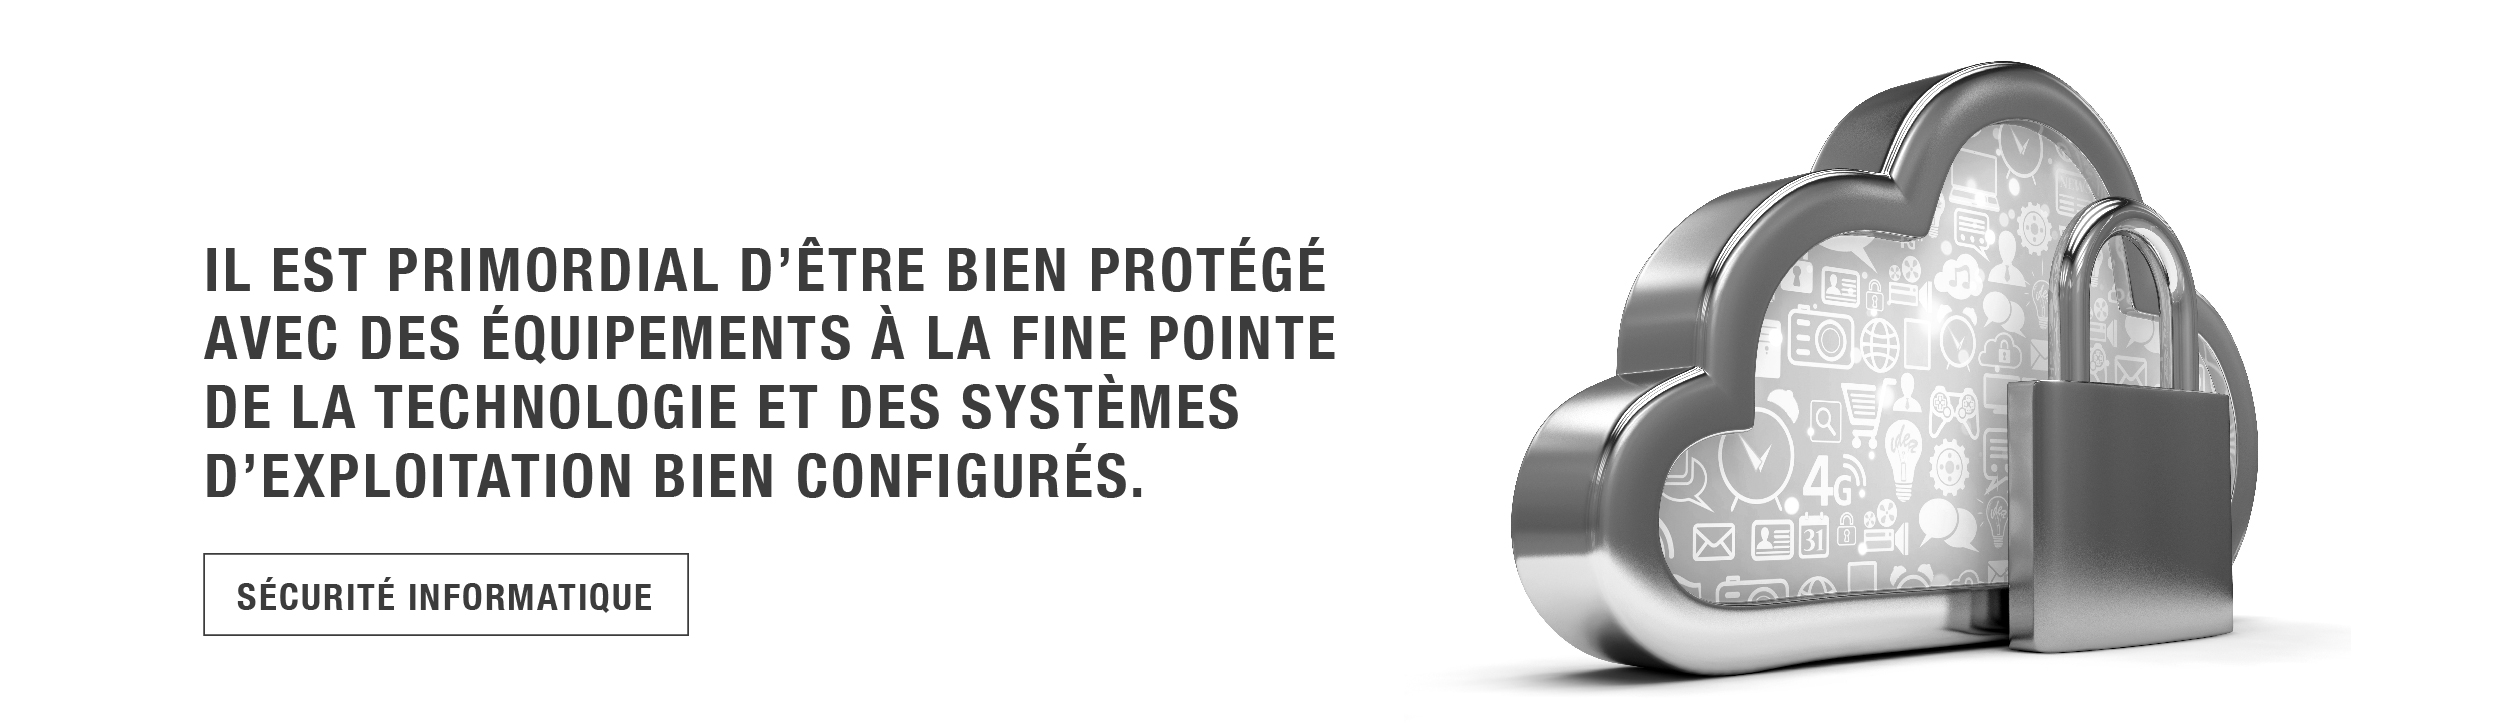 SBinformatique-service-securite